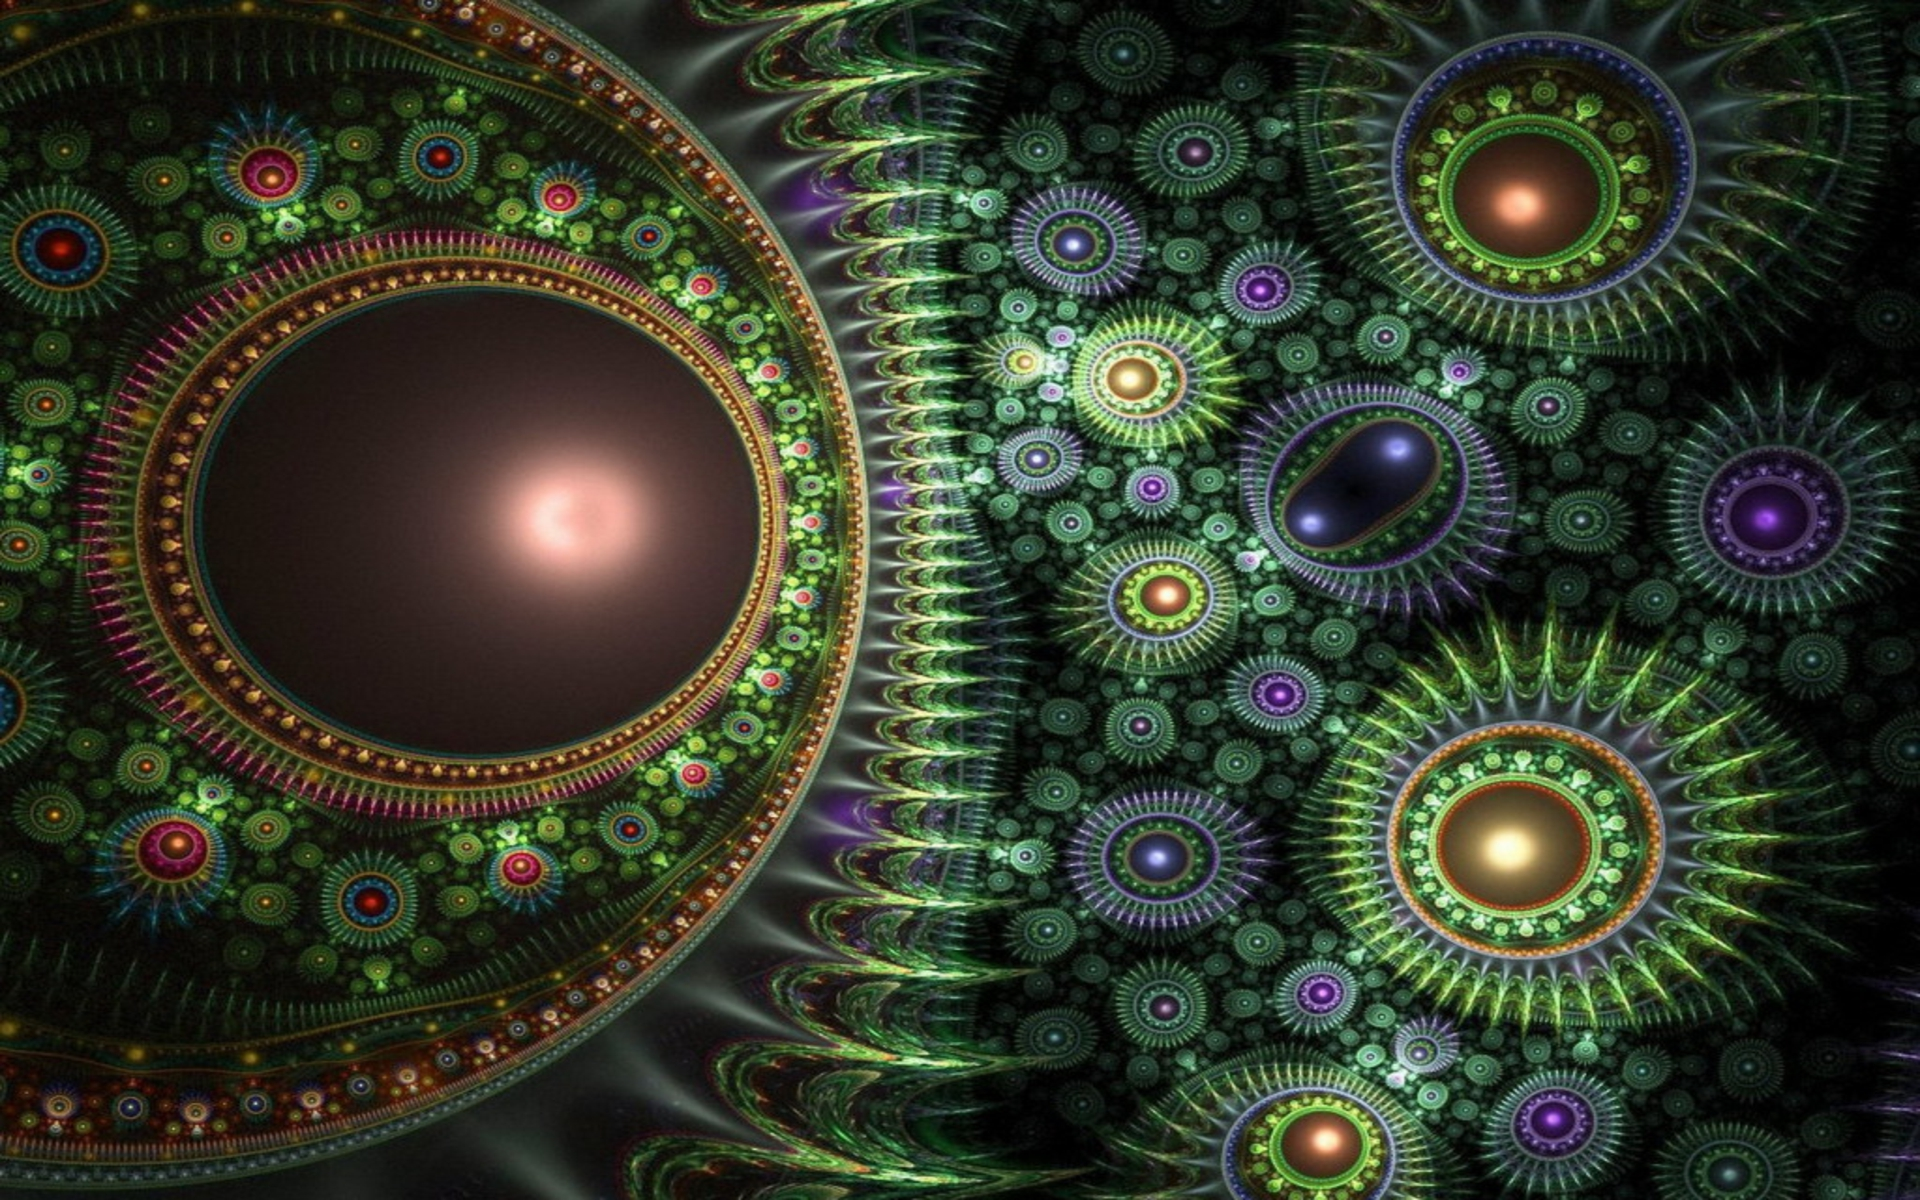 DOWNLOAD: fractal-wallpaper free picture 2560 x 1600